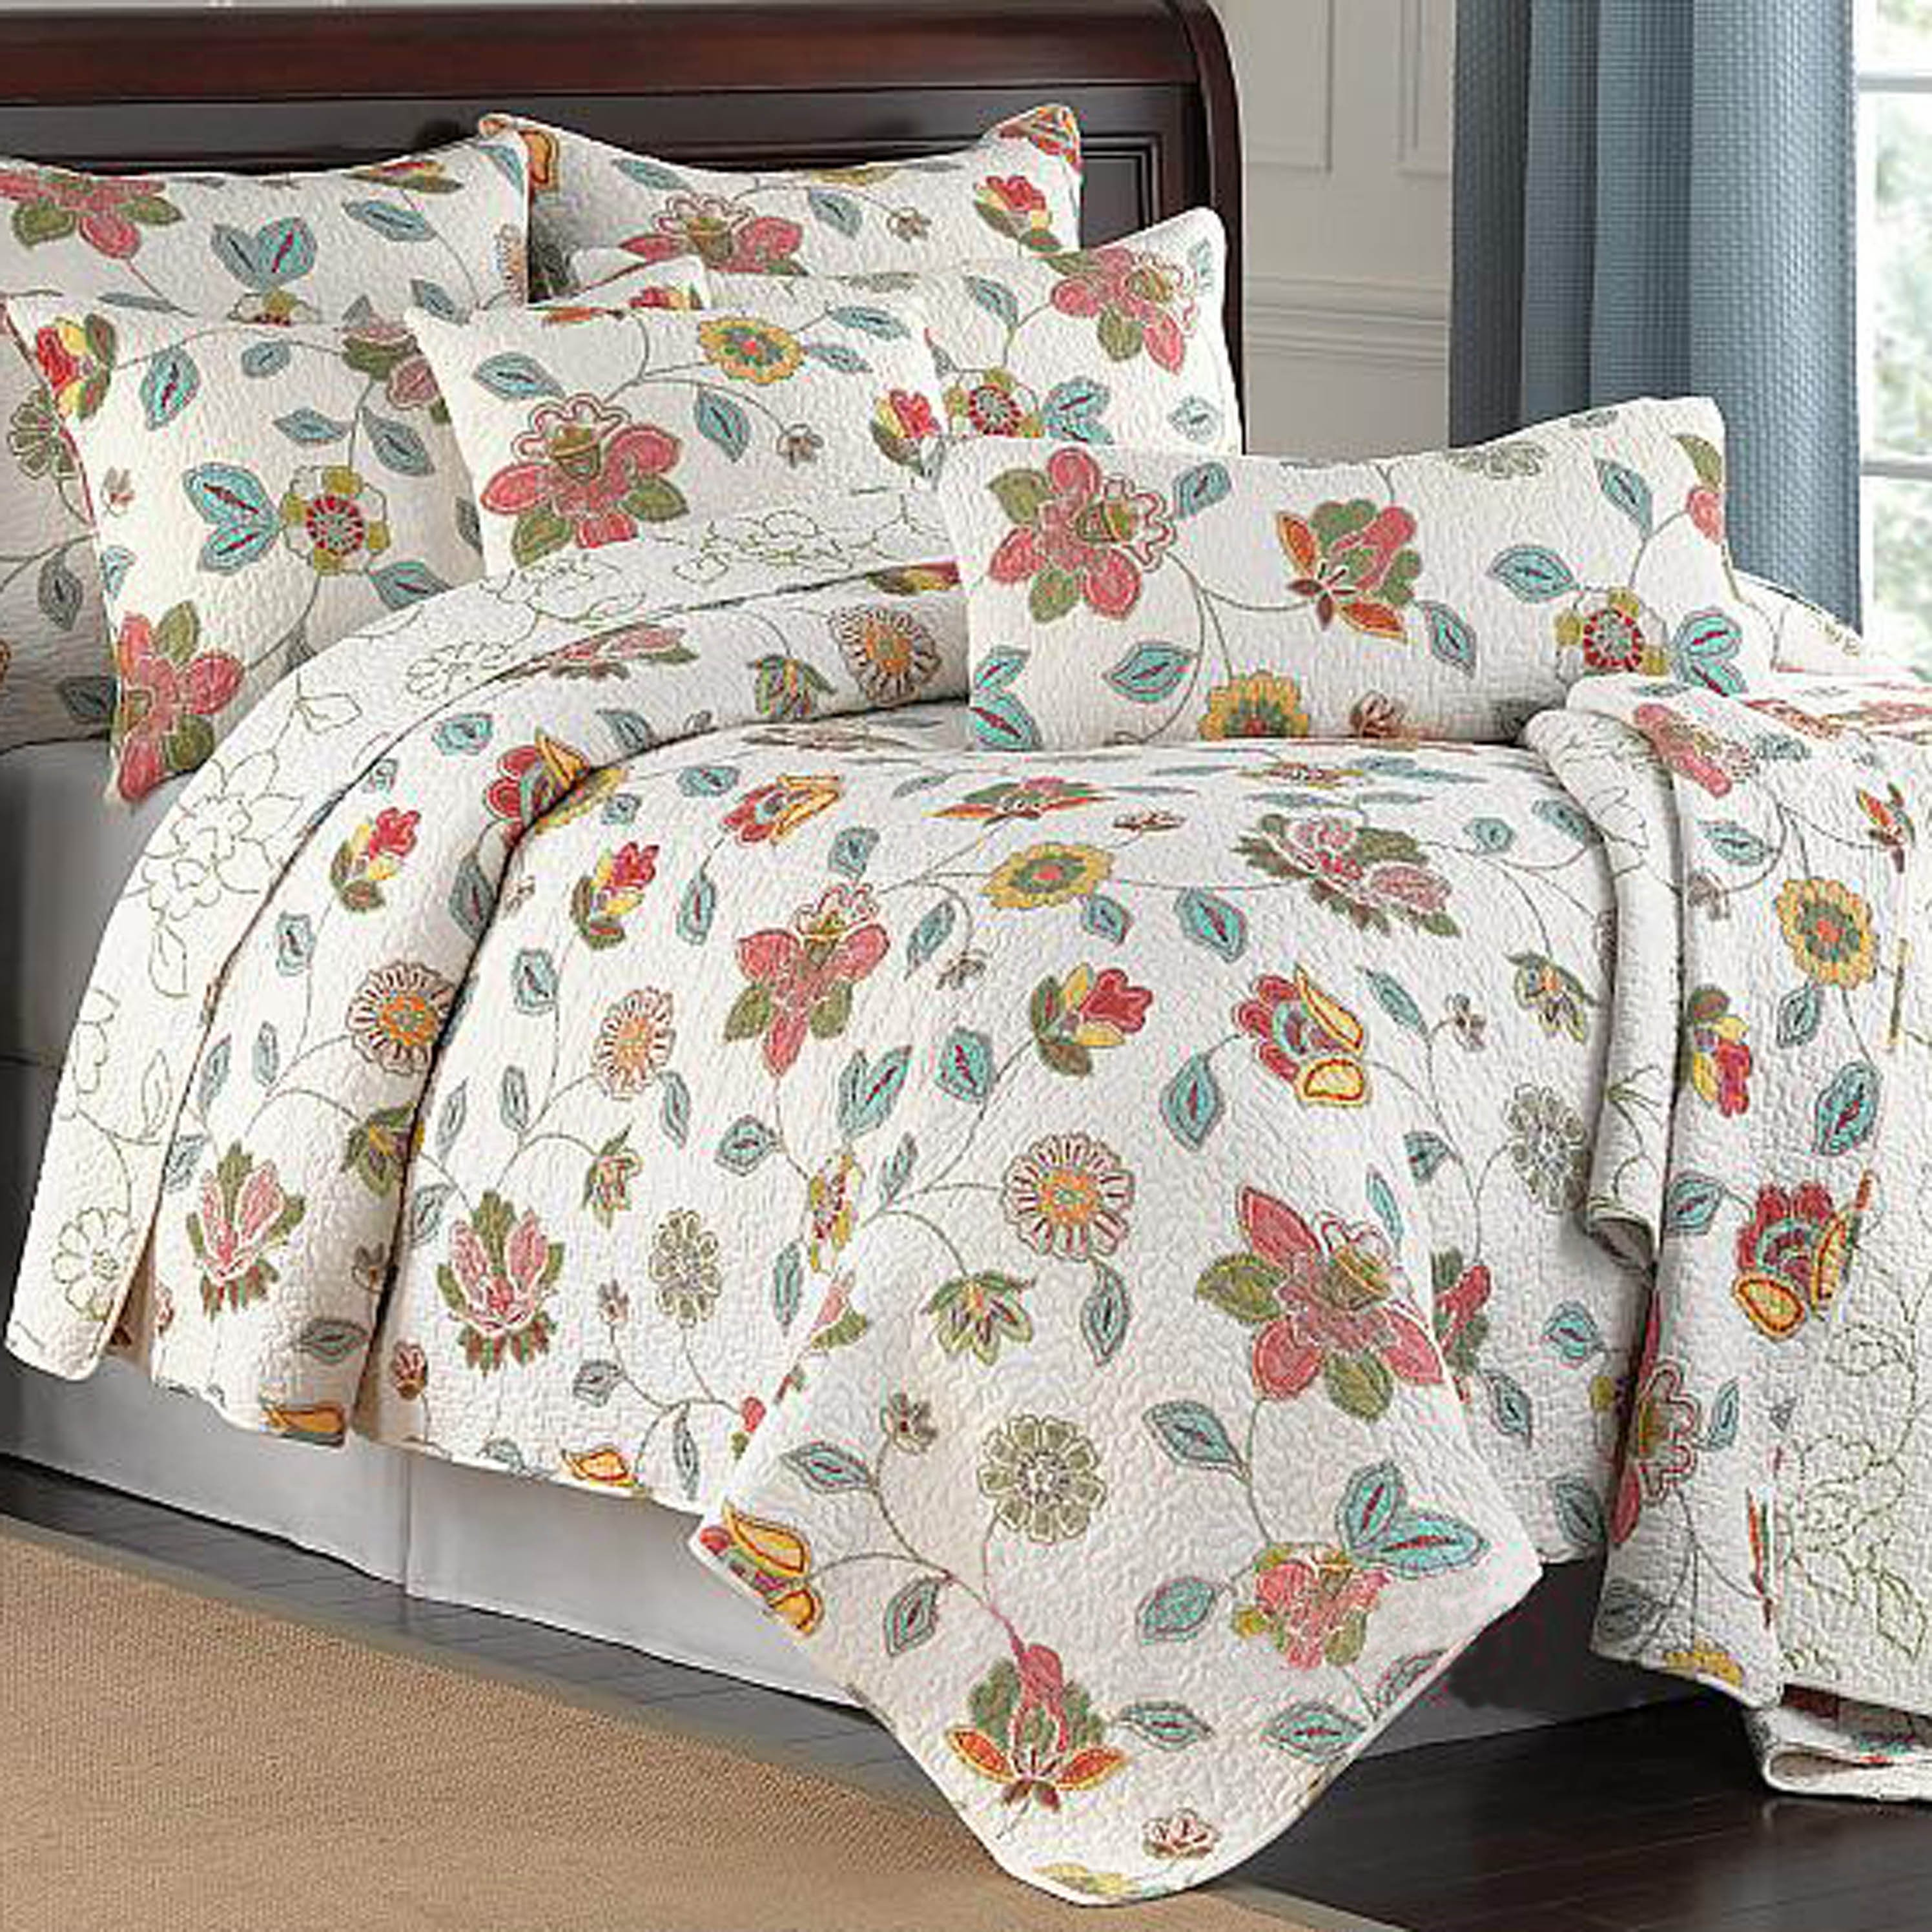 Home Accents Avery Quilt